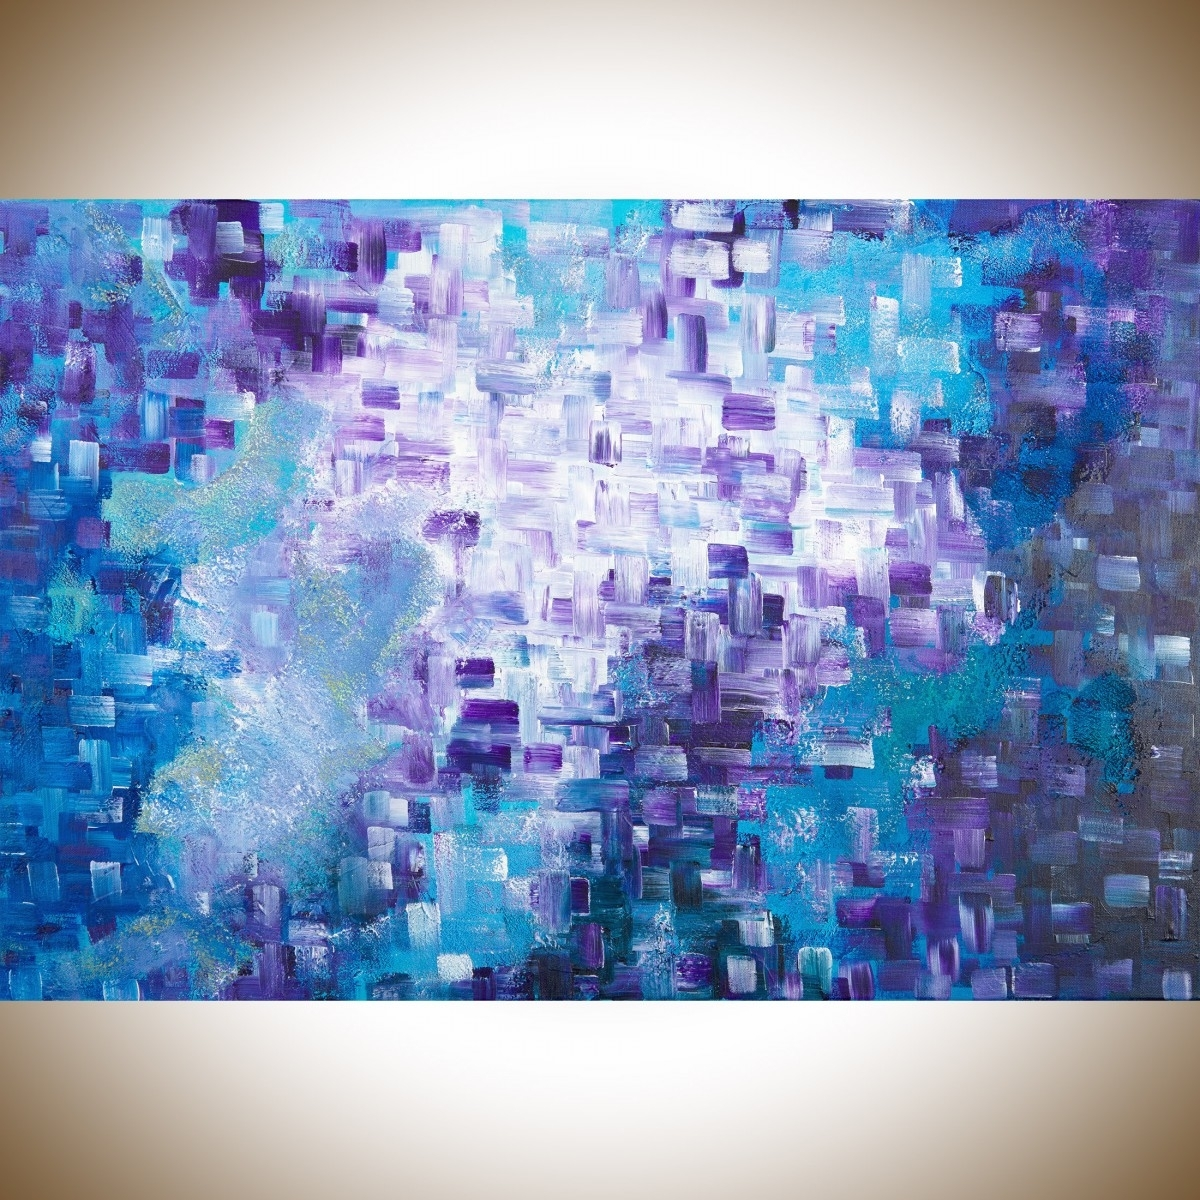 """Blue Abstract Wall Art Within Recent Dissolvingqiqigallery 36""""x24"""" Stretched Canvas Original Large (View 9 of 15)"""